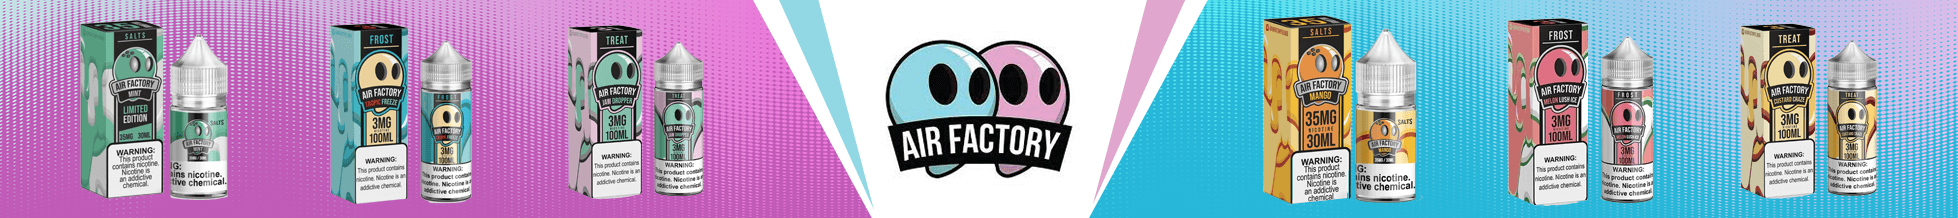 air-factory.png